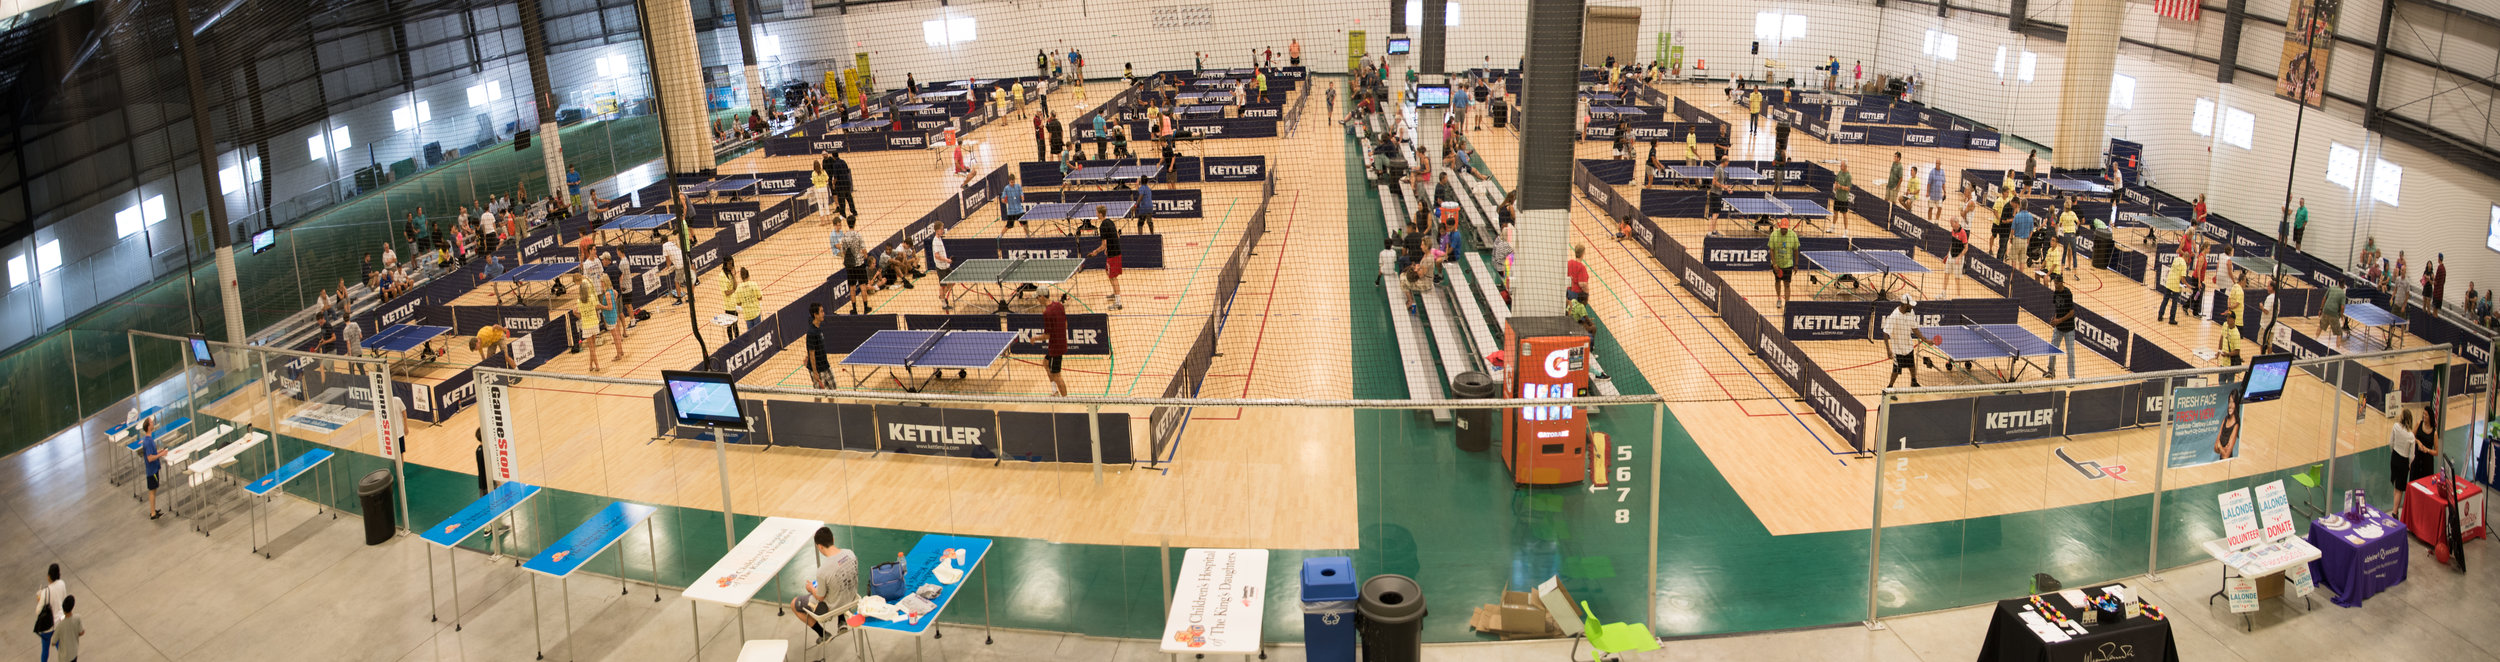 Ping Pong for Charity 2016 at the Virginia Beach Field House. ©2016 Images by Design